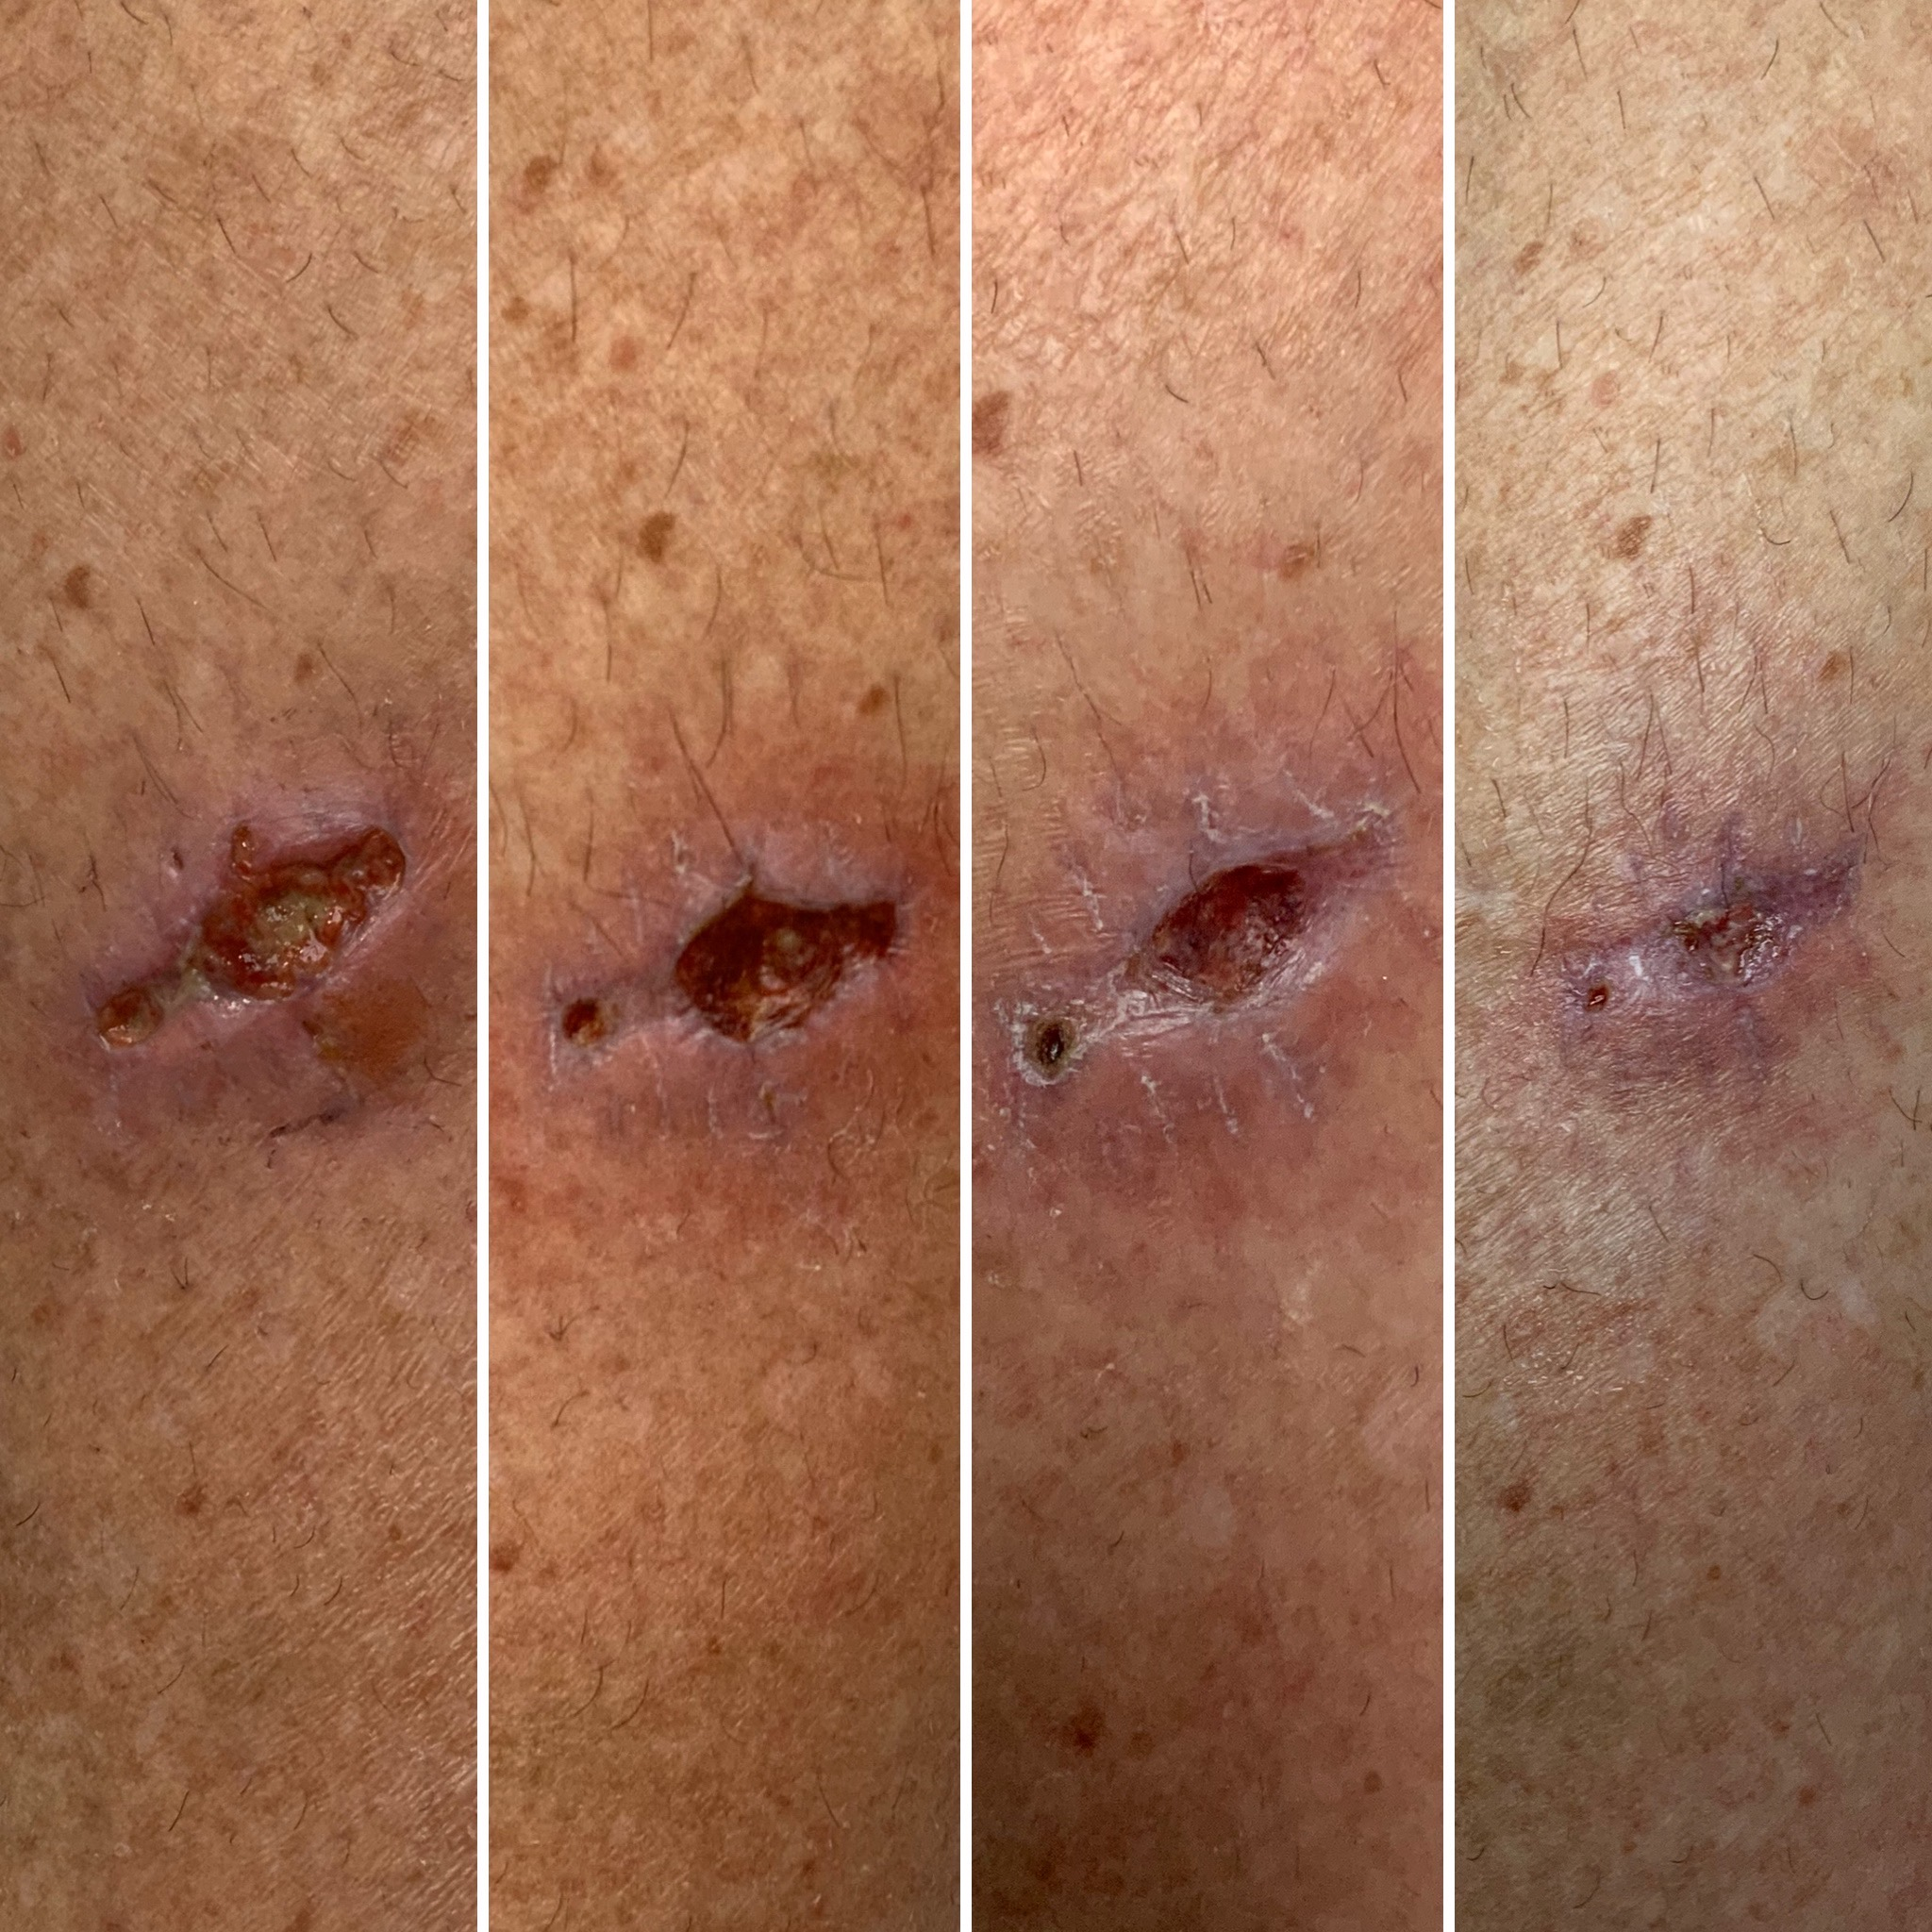 First two pics were taken on the same day before and after LED (week 1)- Pic 3 is week 2- Pic 4 is week3- The patient was treated for 3 weeks, twice per week- (1)-JPG